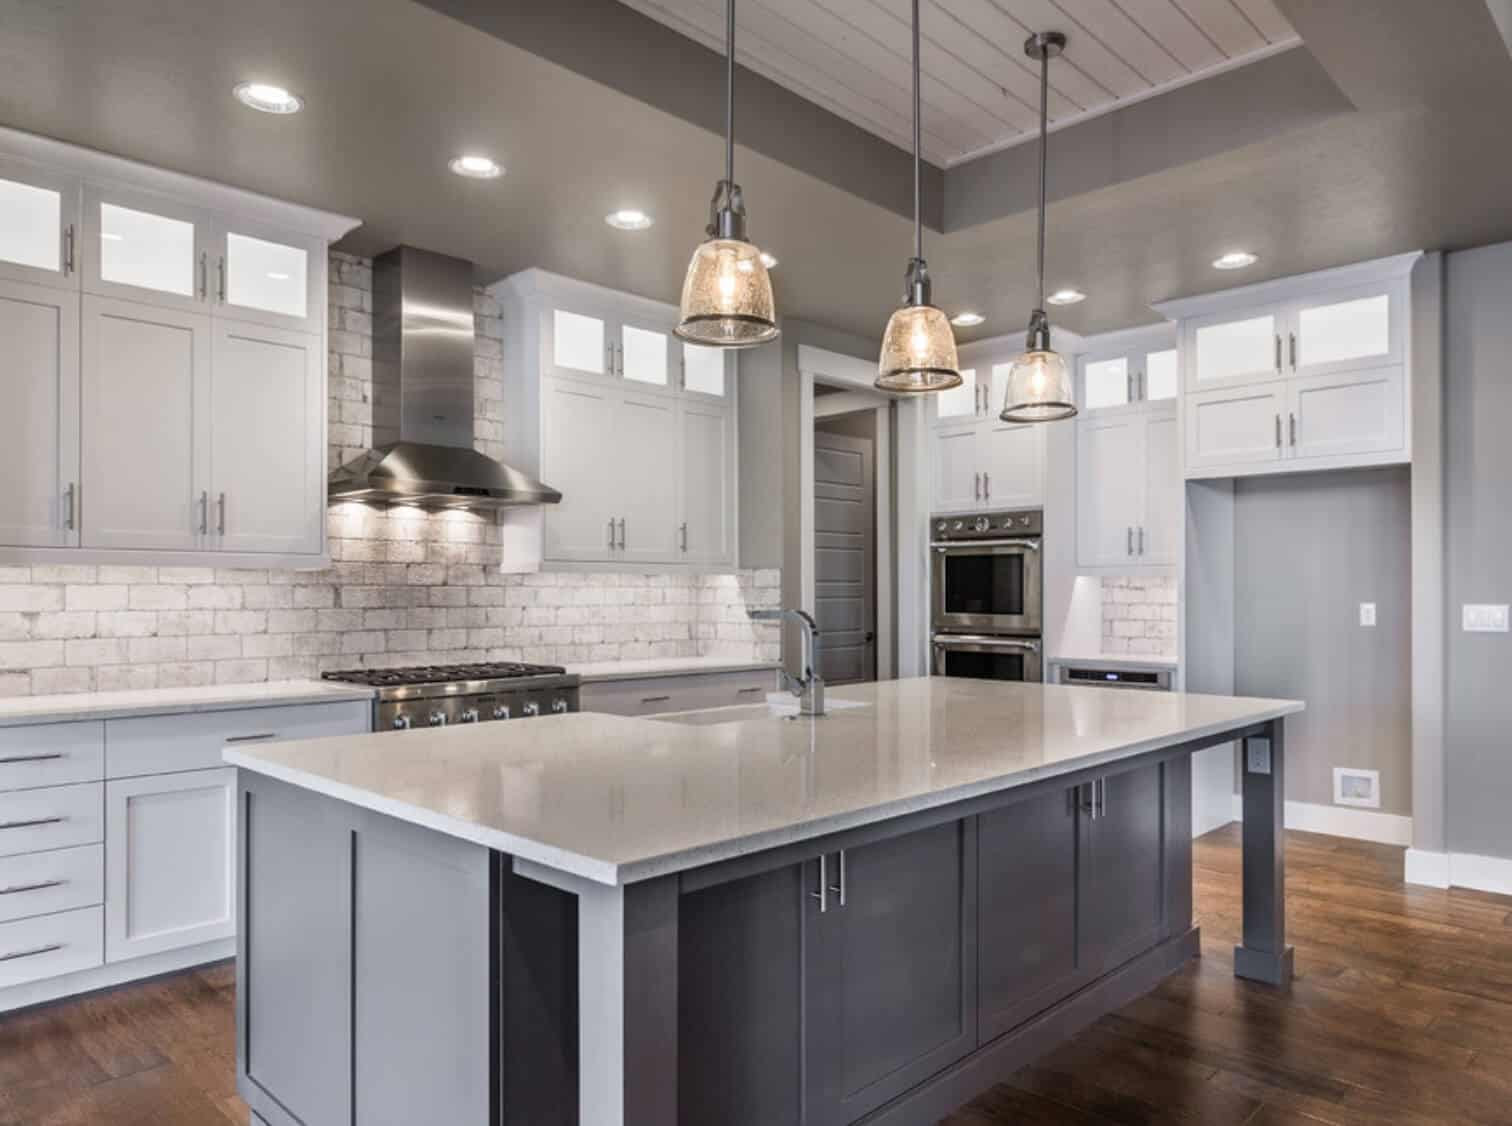 Modern Kitchen Ideas Every Cook Is Sure To Fall In Love